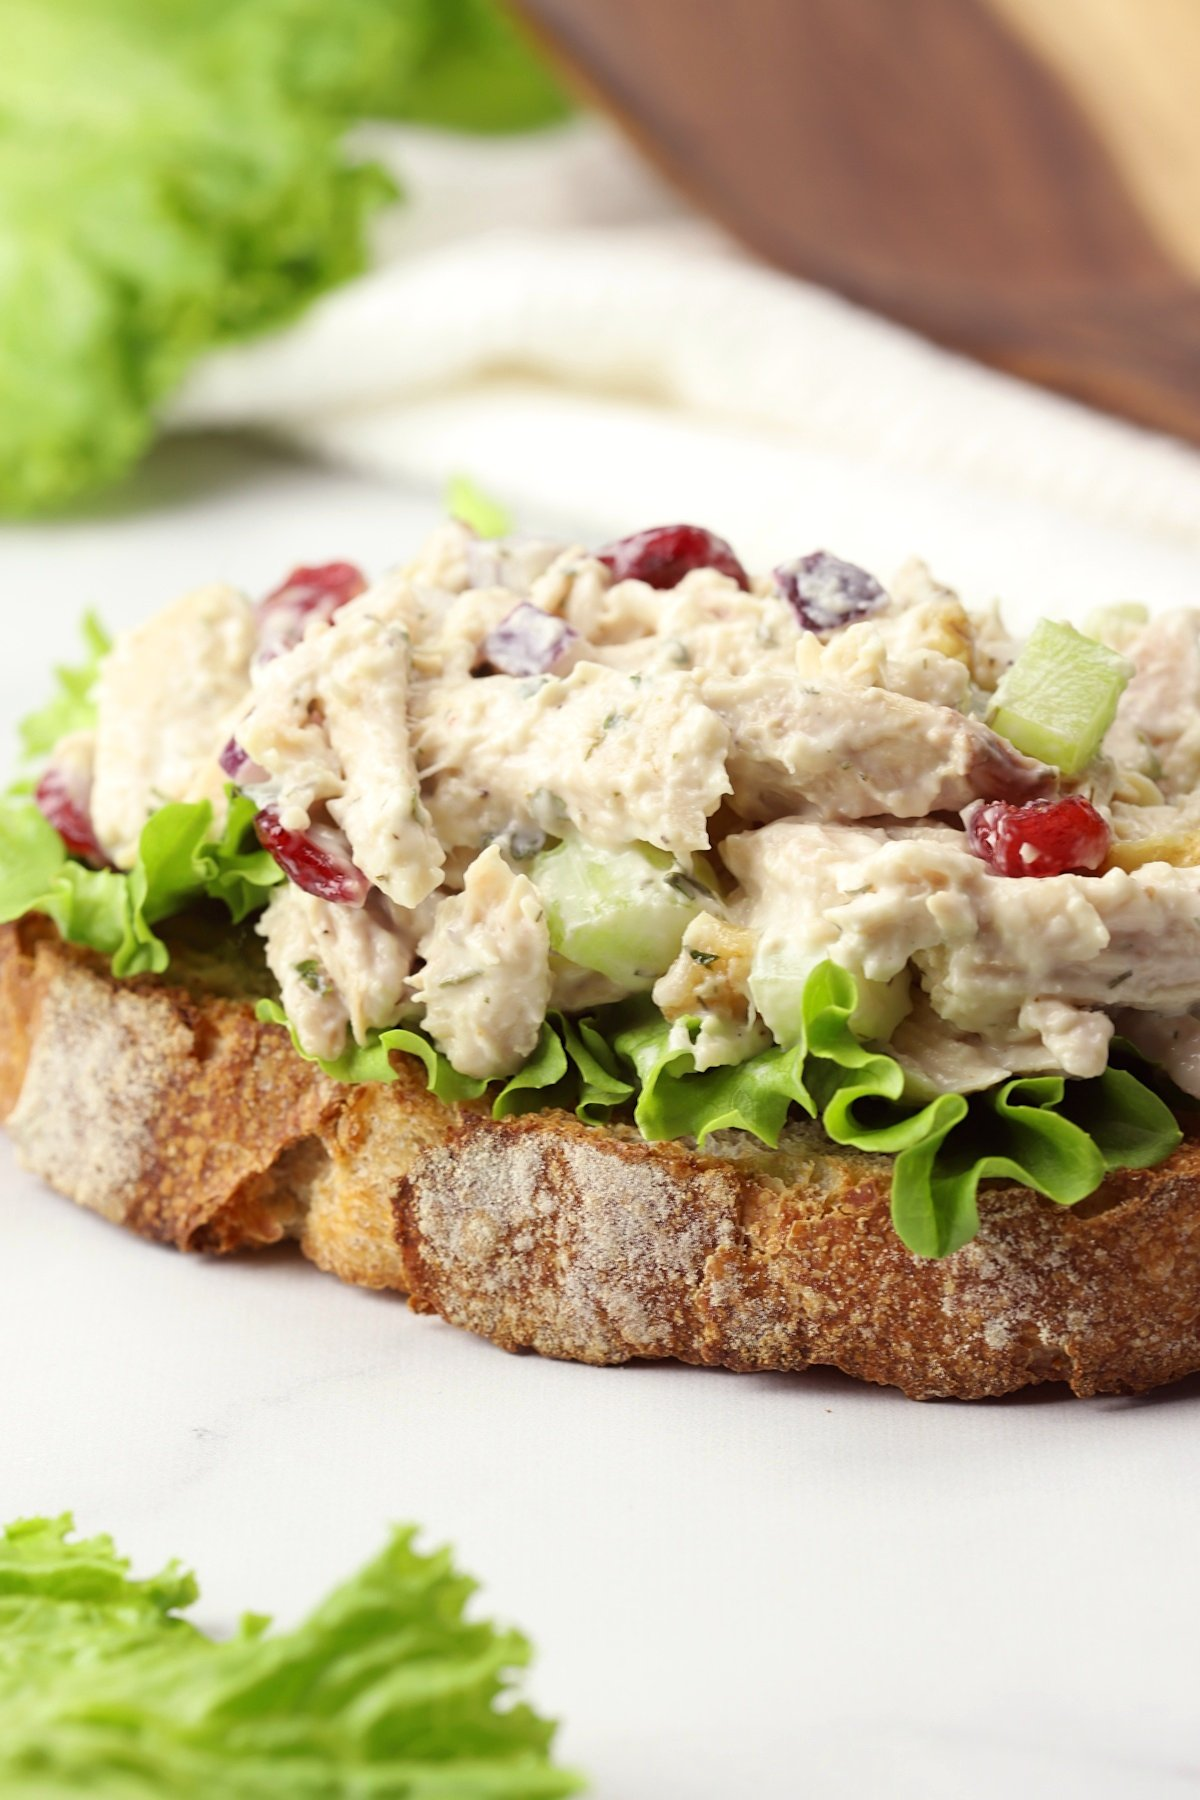 A slice of bread, lettuce, and a scoop of chicken salad.